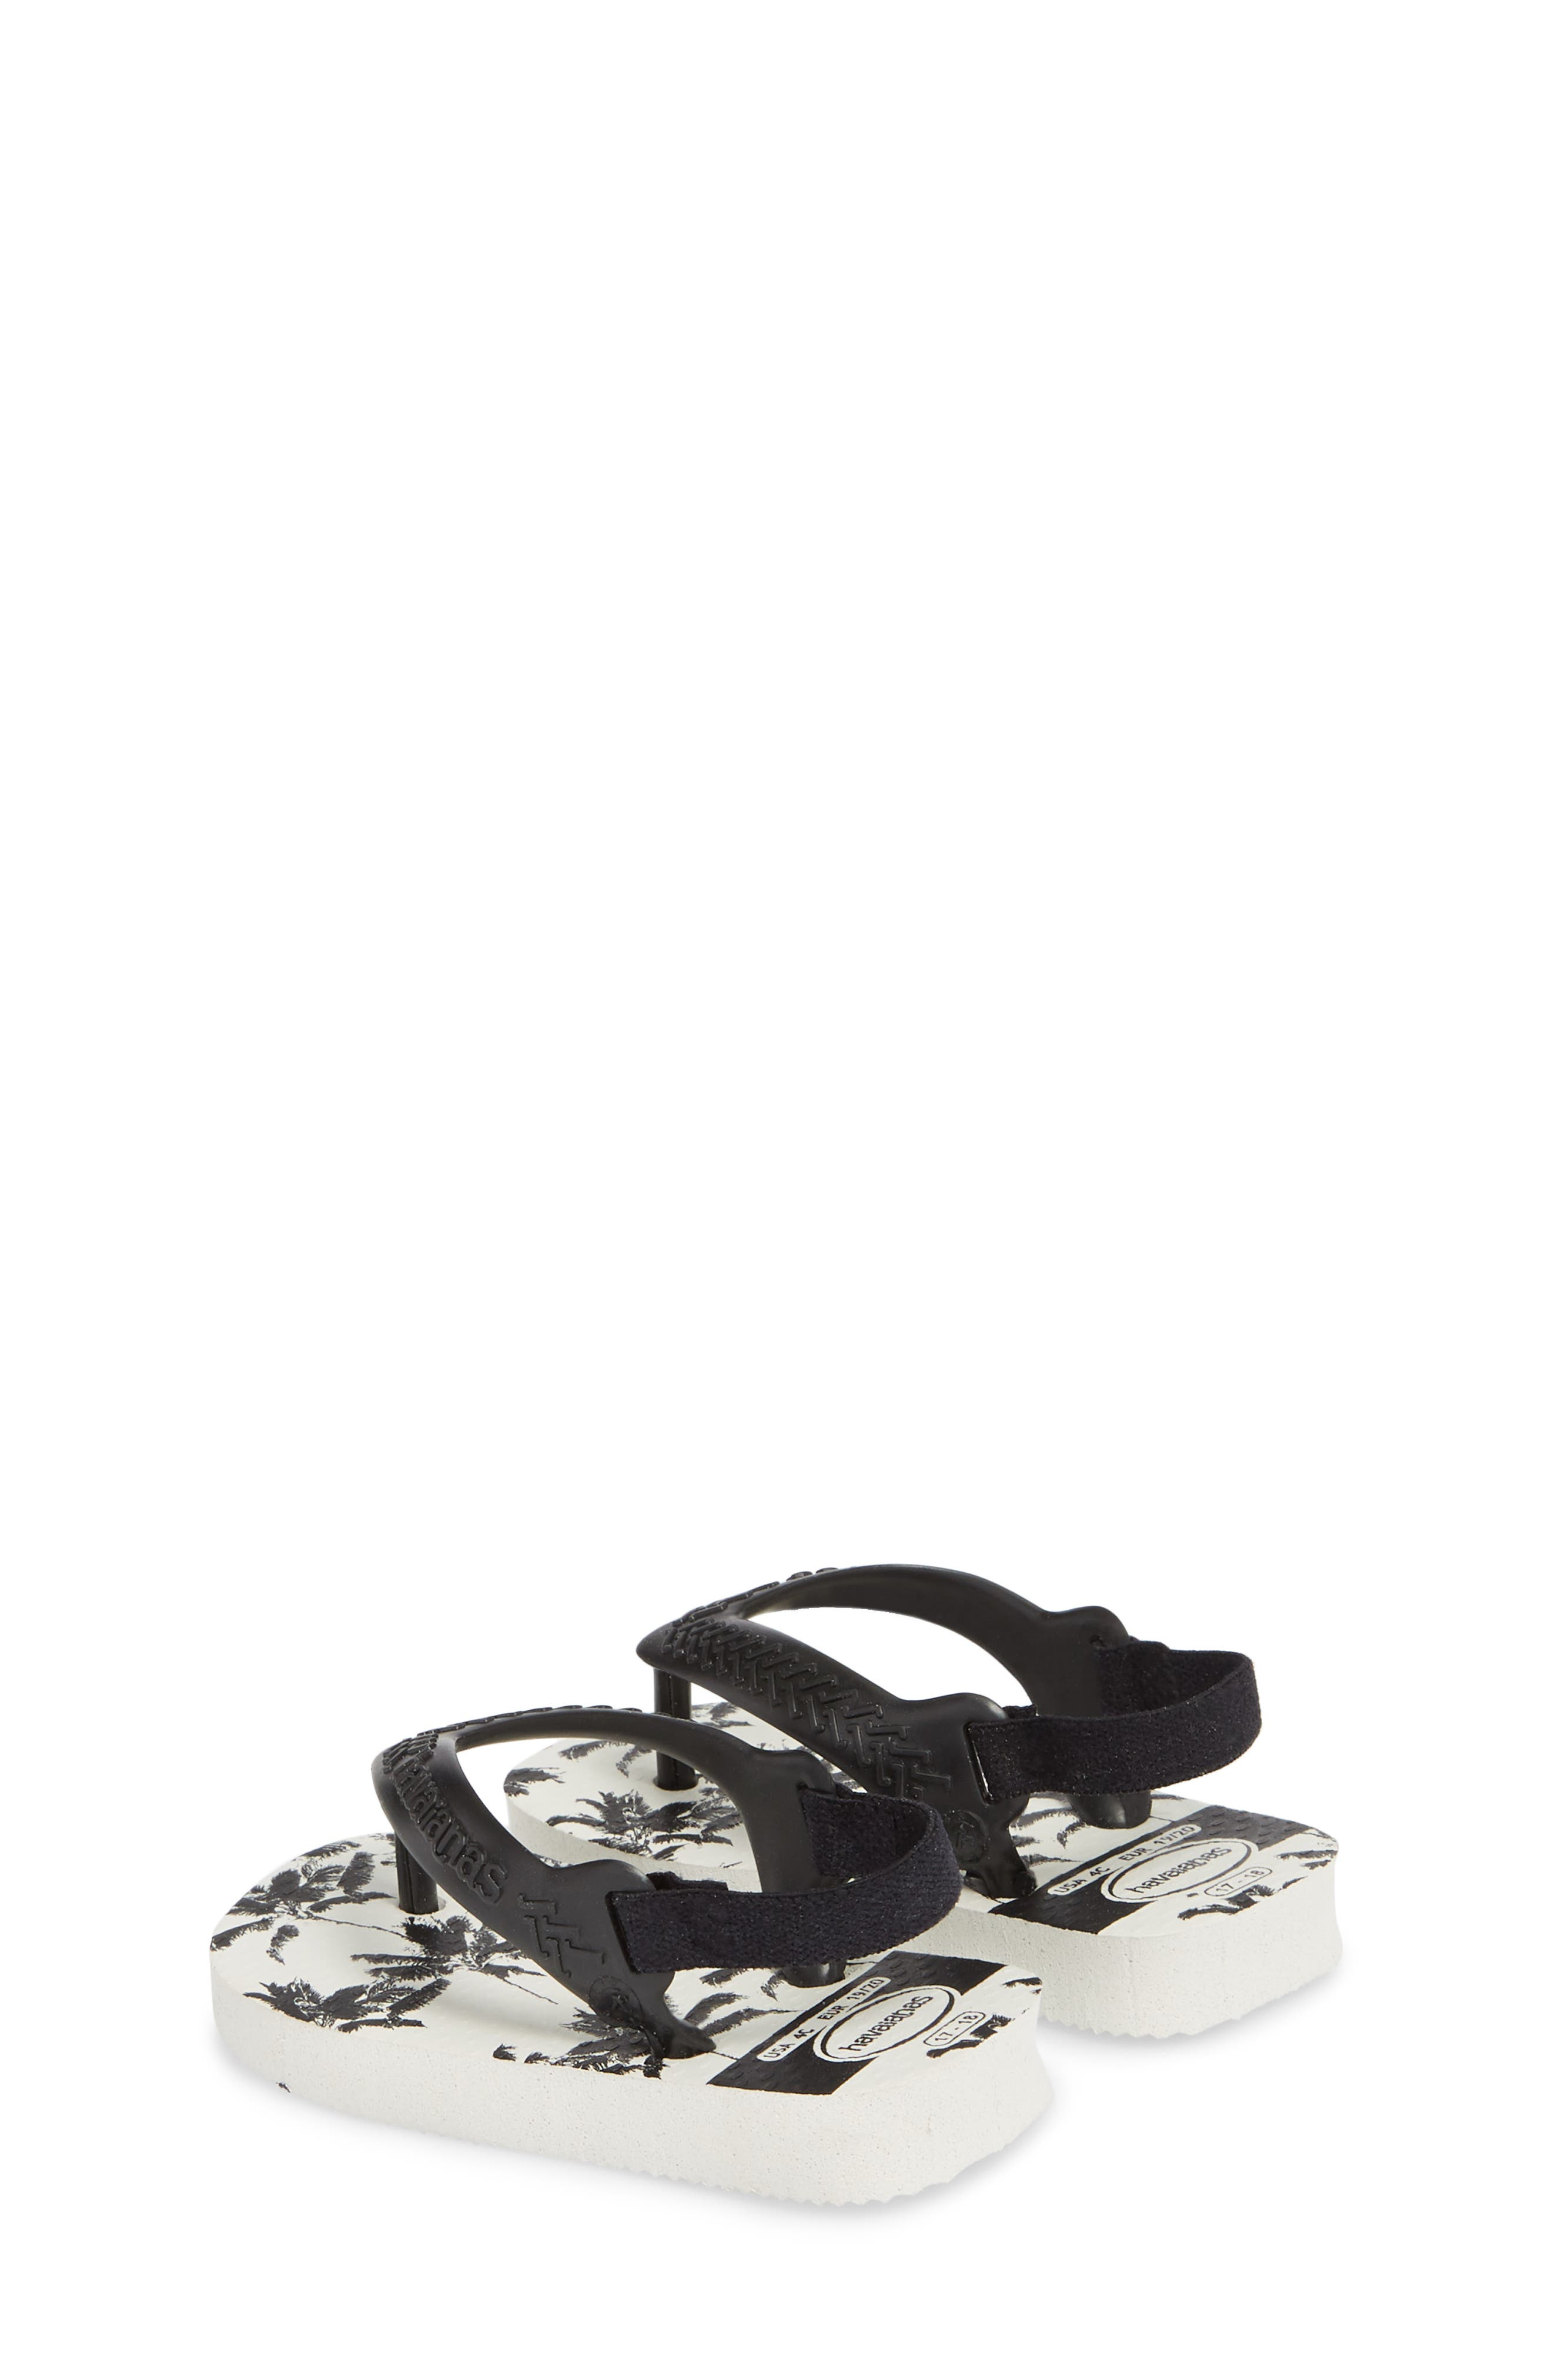 Havianas Baby Chic Sandal,                             Alternate thumbnail 2, color,                             White/ Black/ Black